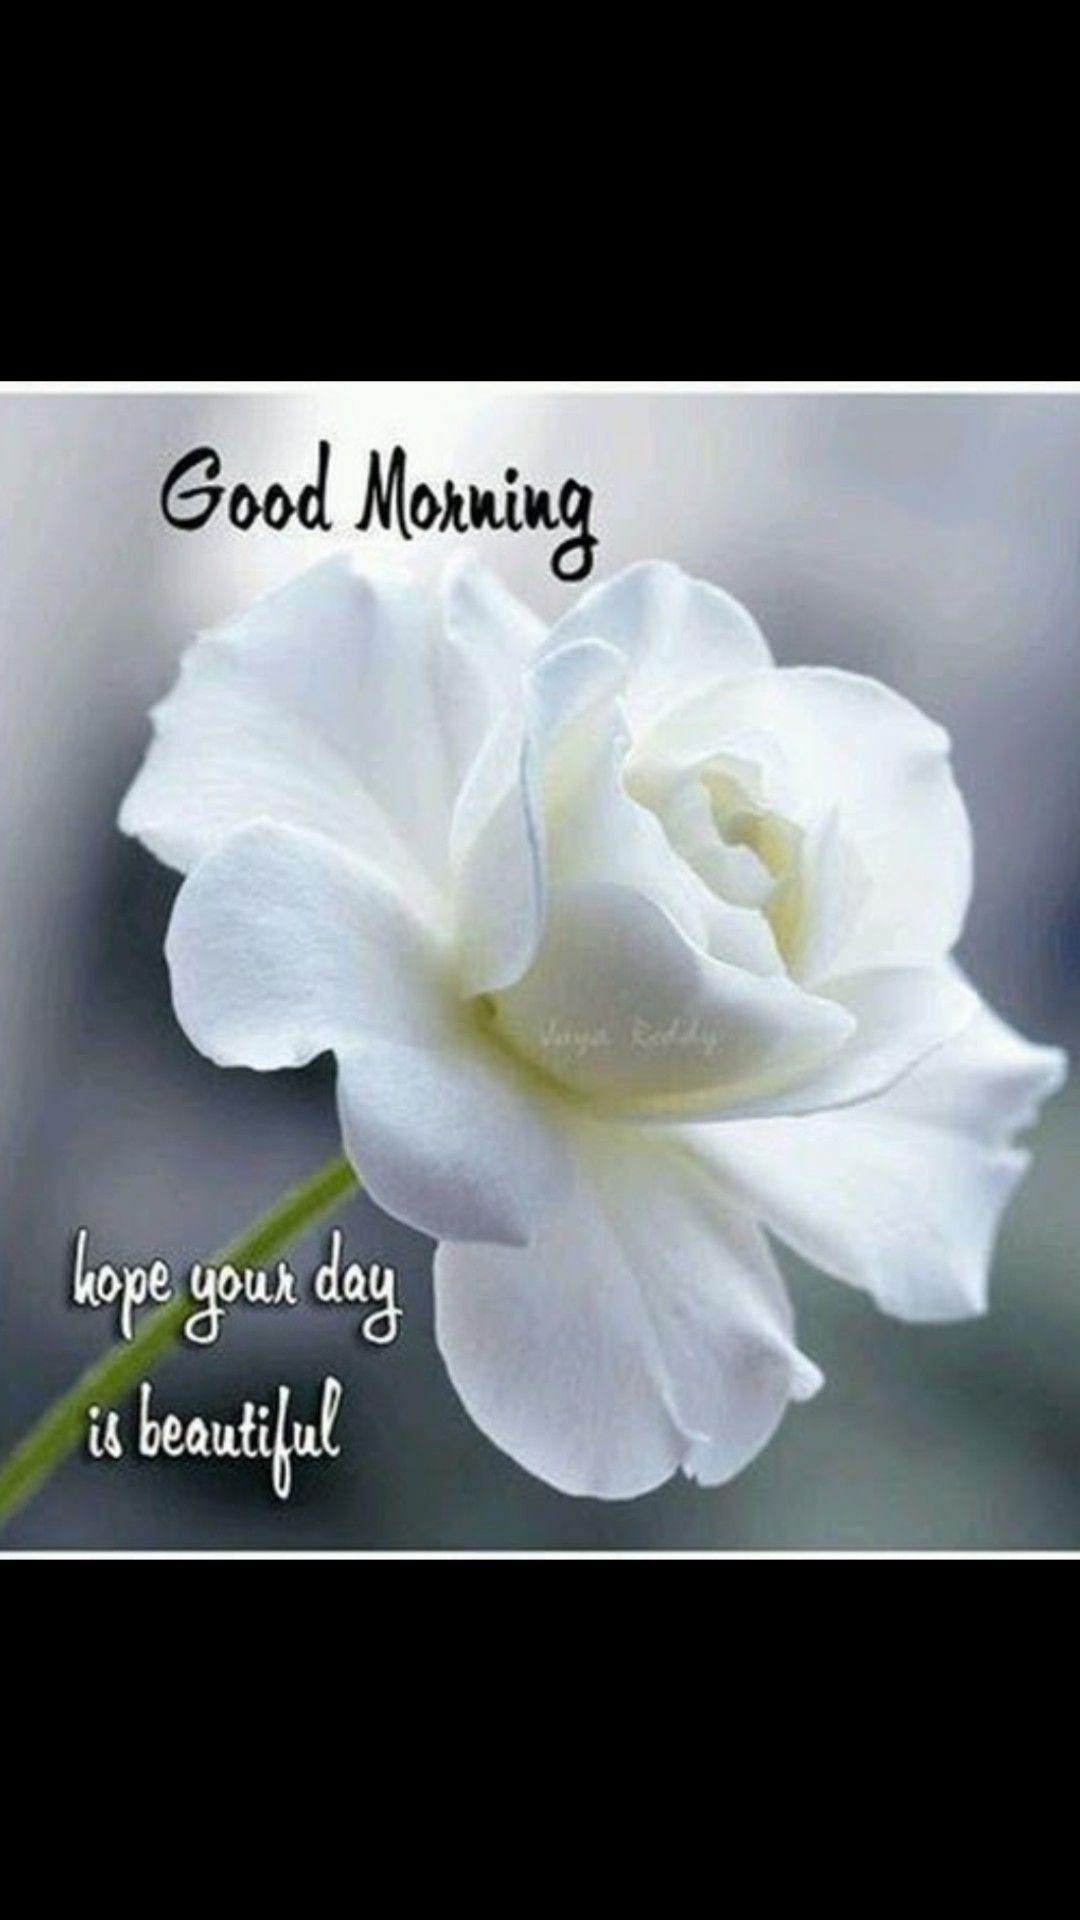 Pin by aran prasad on good night and good morning pinterest discover ideas about good morning greetings izmirmasajfo